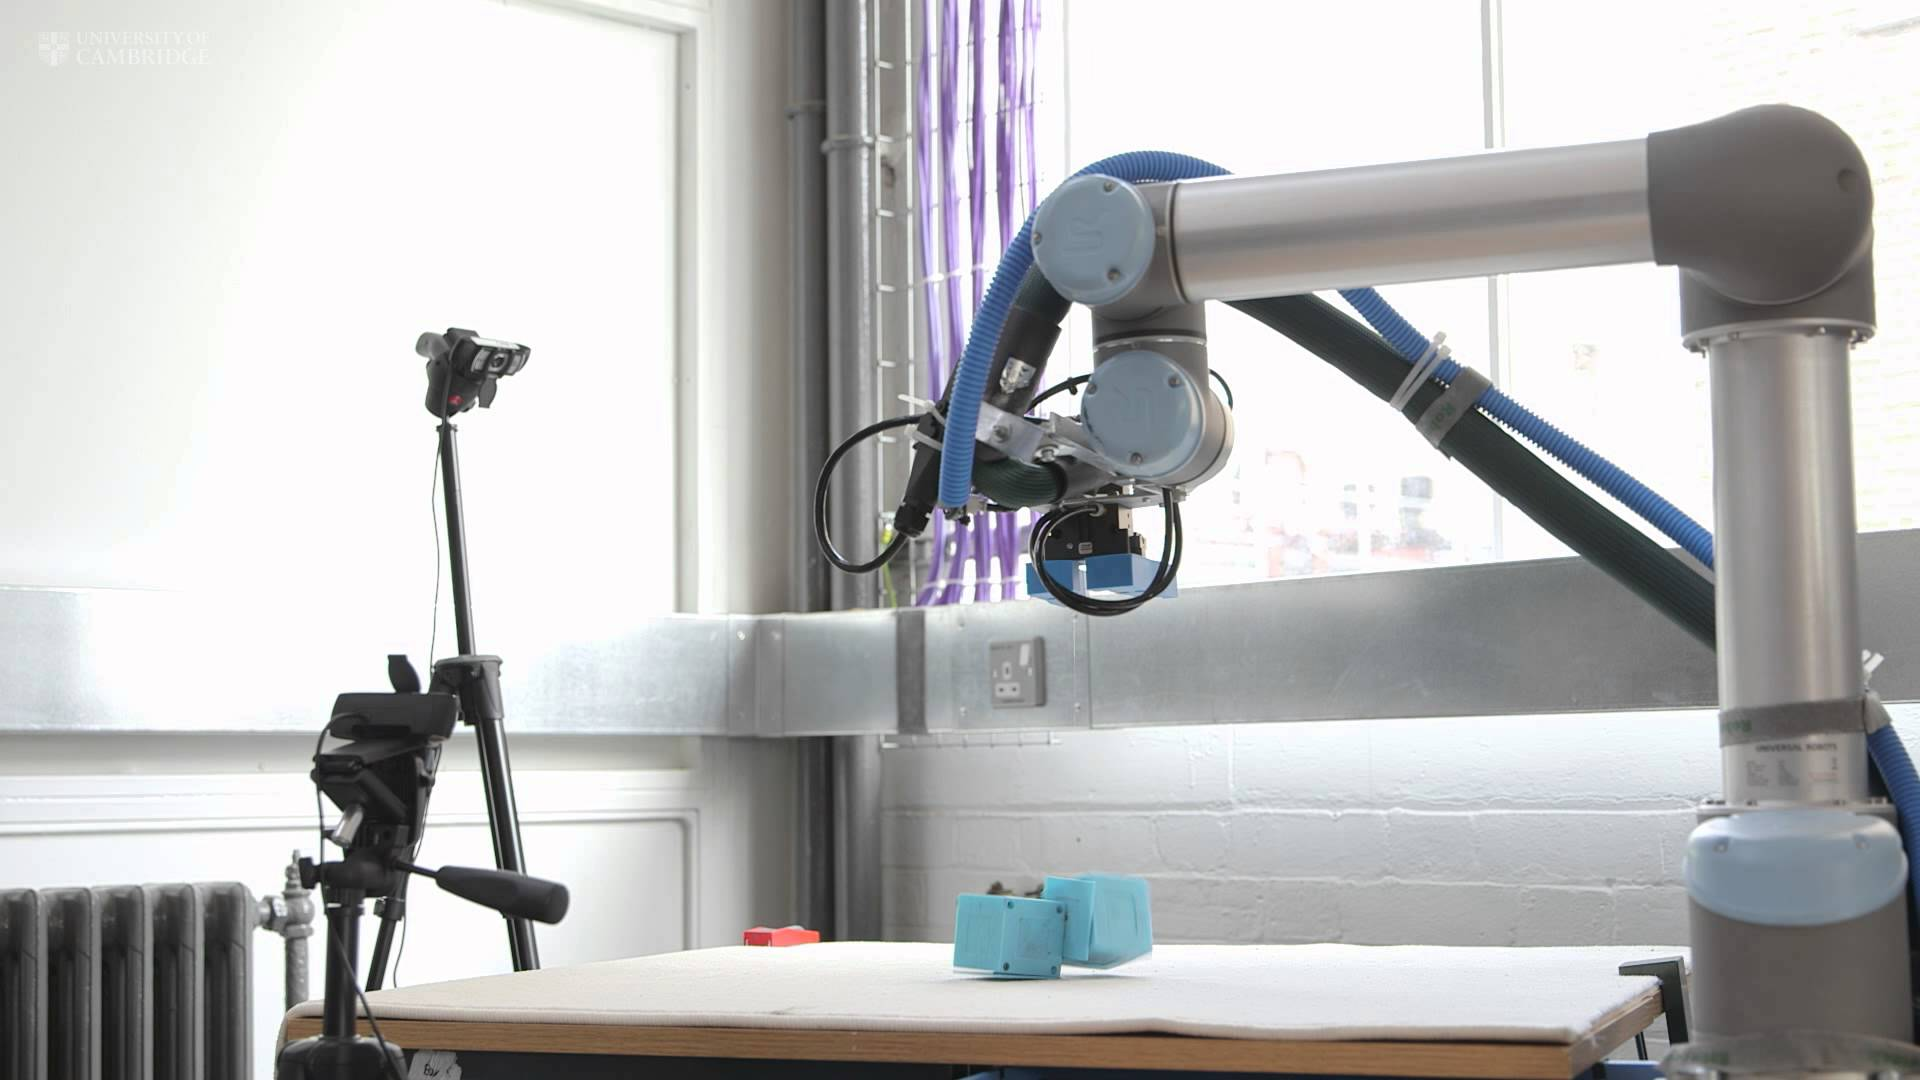 This Robot Builds Other Robots, Learns From Failures, Builds Better Robots